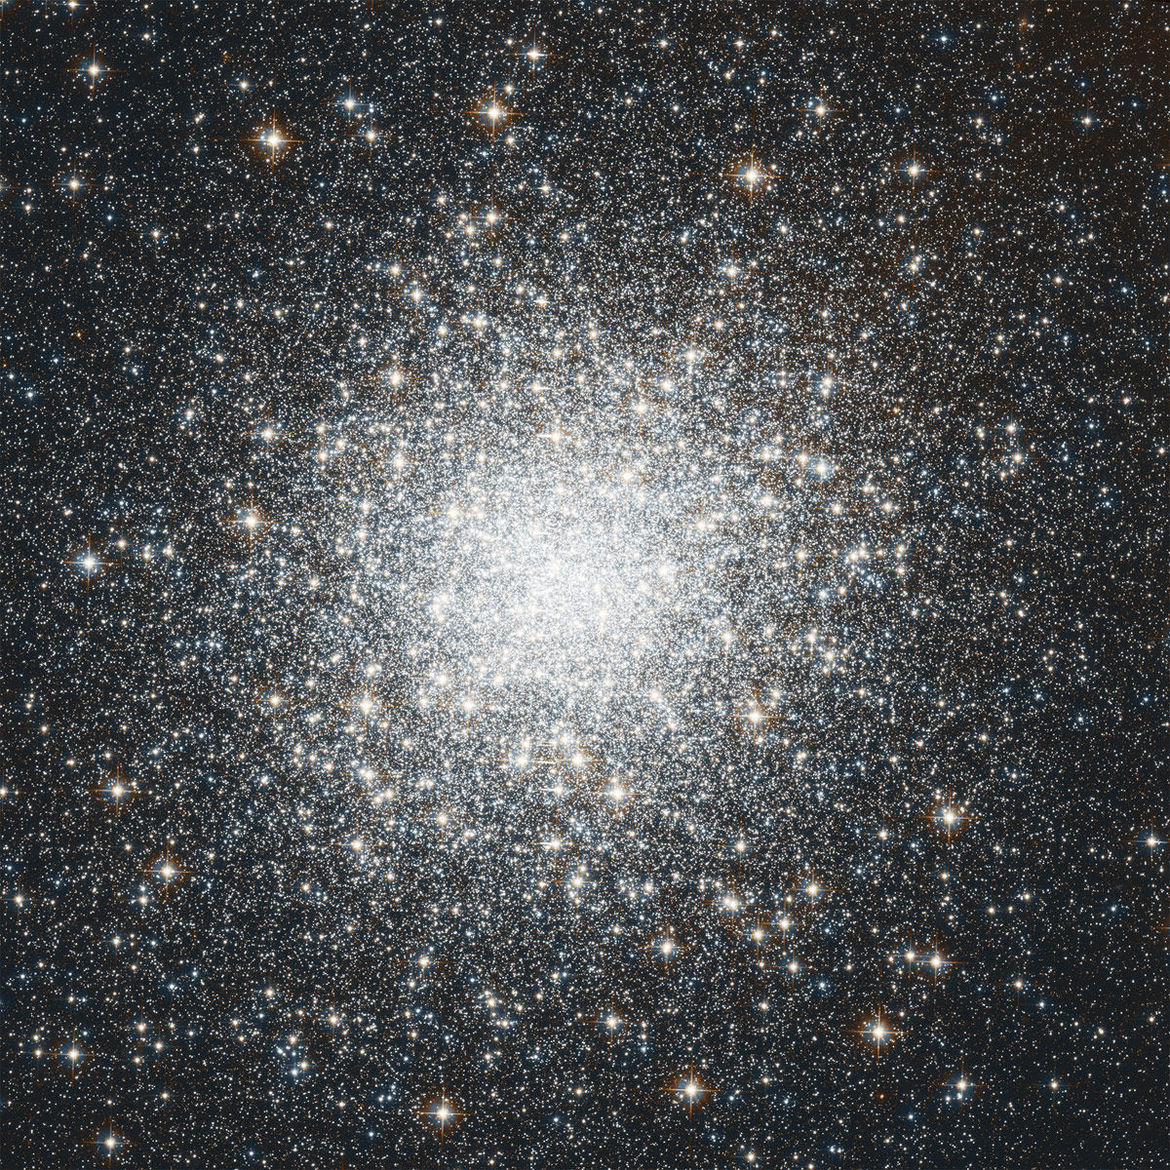 Hubble image of the globular cluster M2 using natural color filters. Credit: NASA, ESA, STScI and A. Sarajedini (University of Florida)